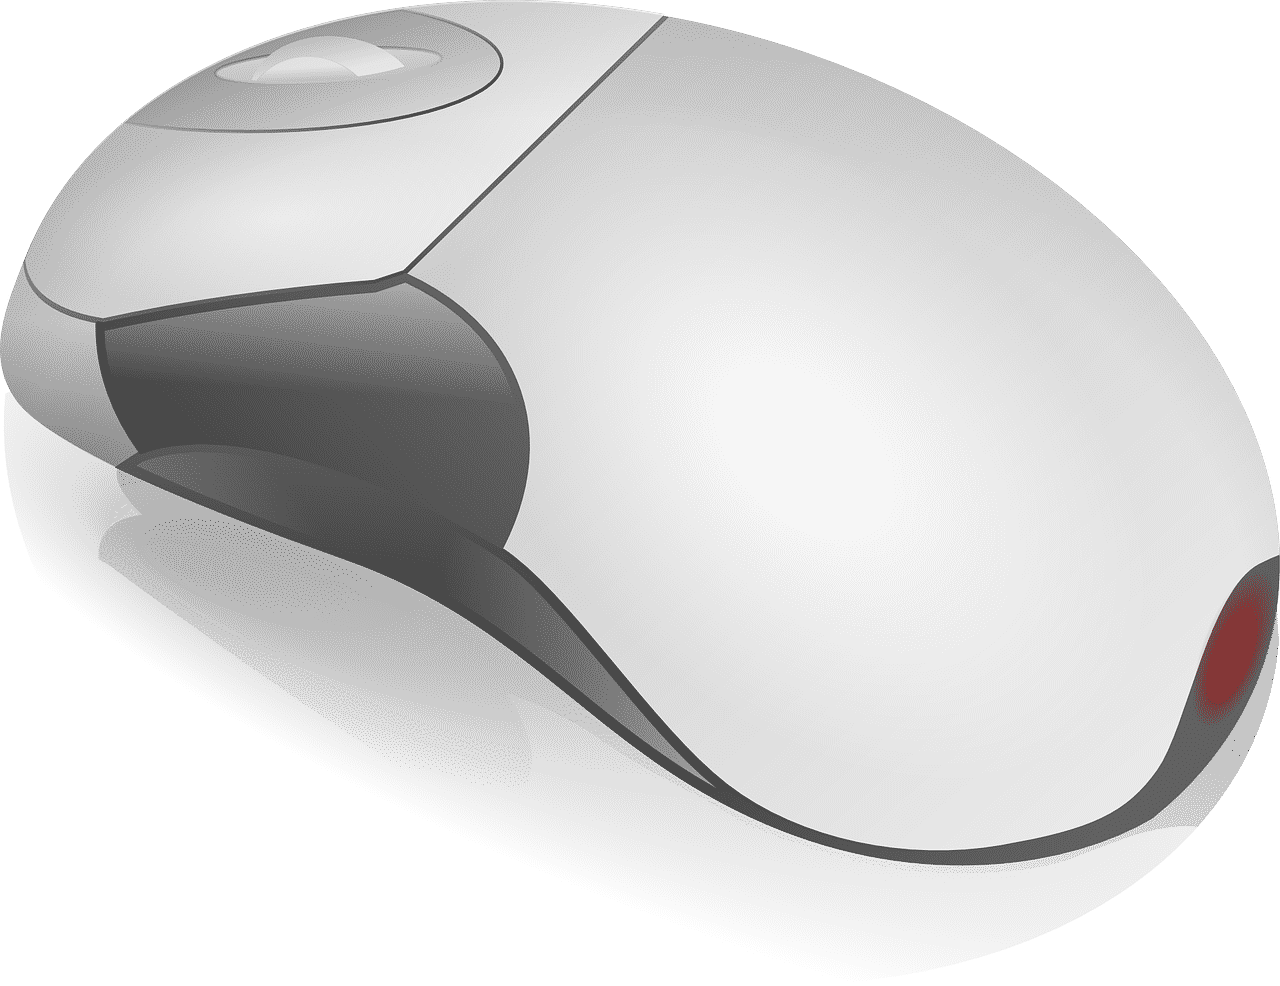 computer mouse 23266 1280